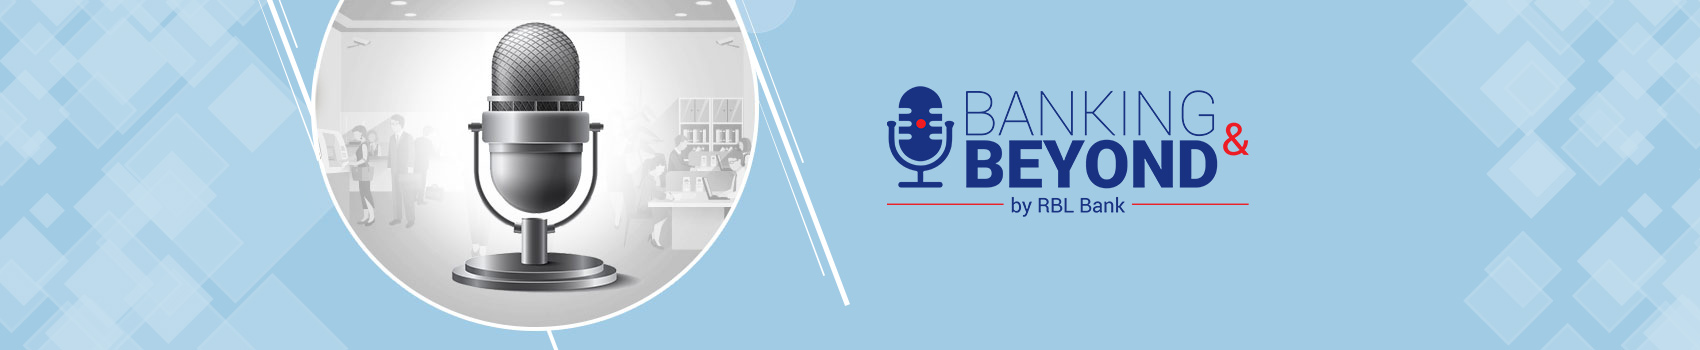 Banking & Beyond by RBL Bank